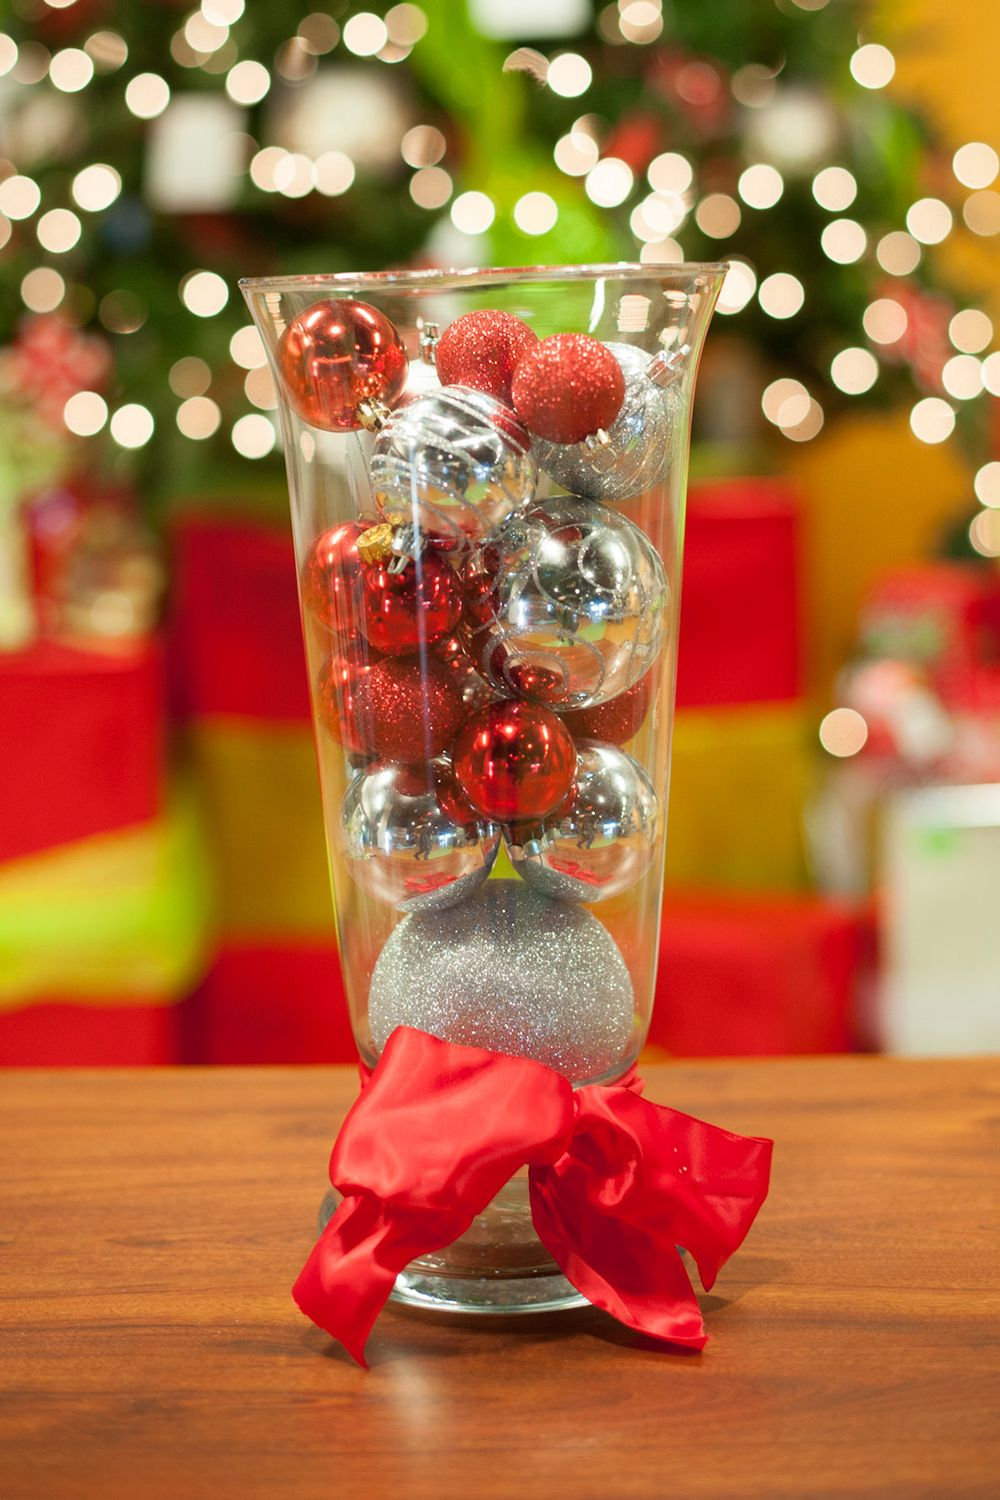 Furniture and accessories minimalist cheap simple yet beautiful decoration outstanding decorations easy but chic christmas centerpiece idea with sparkling red and silver christmas balls in clear glass vase with red bow reviewsmspy